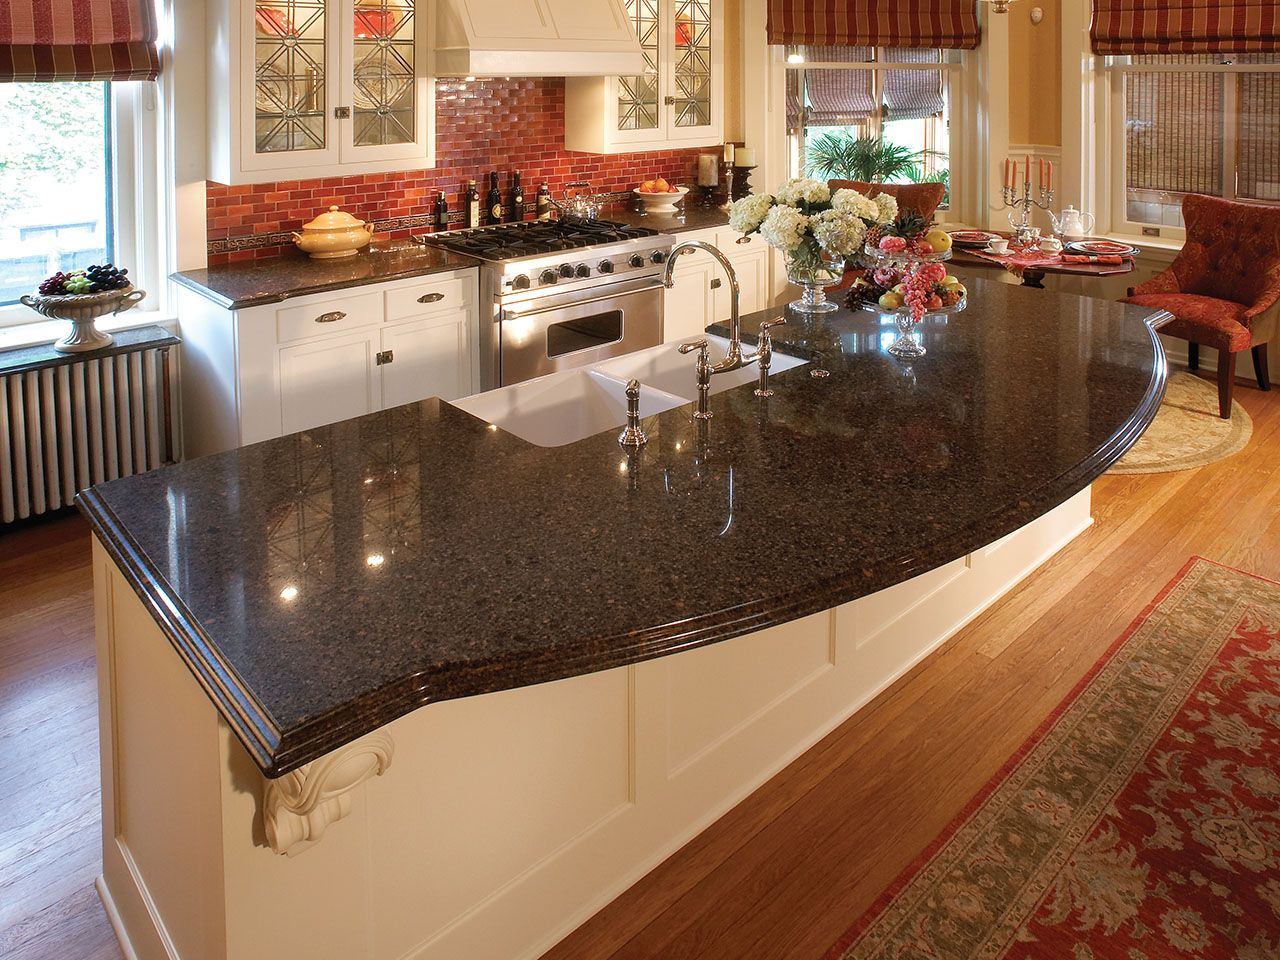 Featured Design Nottingham By Cambria A Bold Backsplash Is